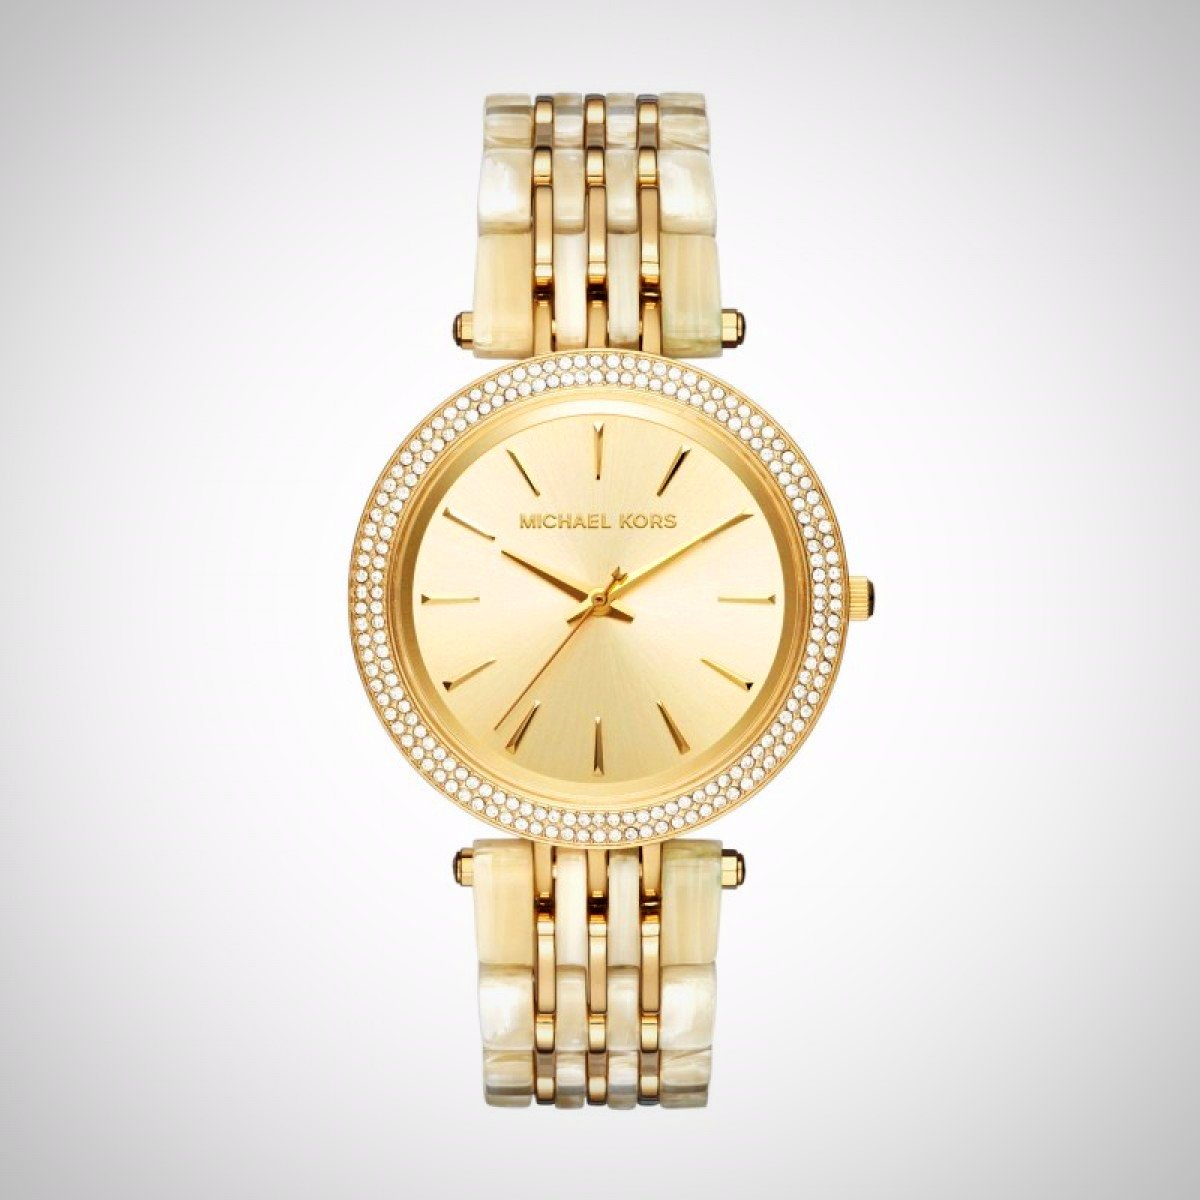 Michael Kors MK4325 Ladies Darci Watch